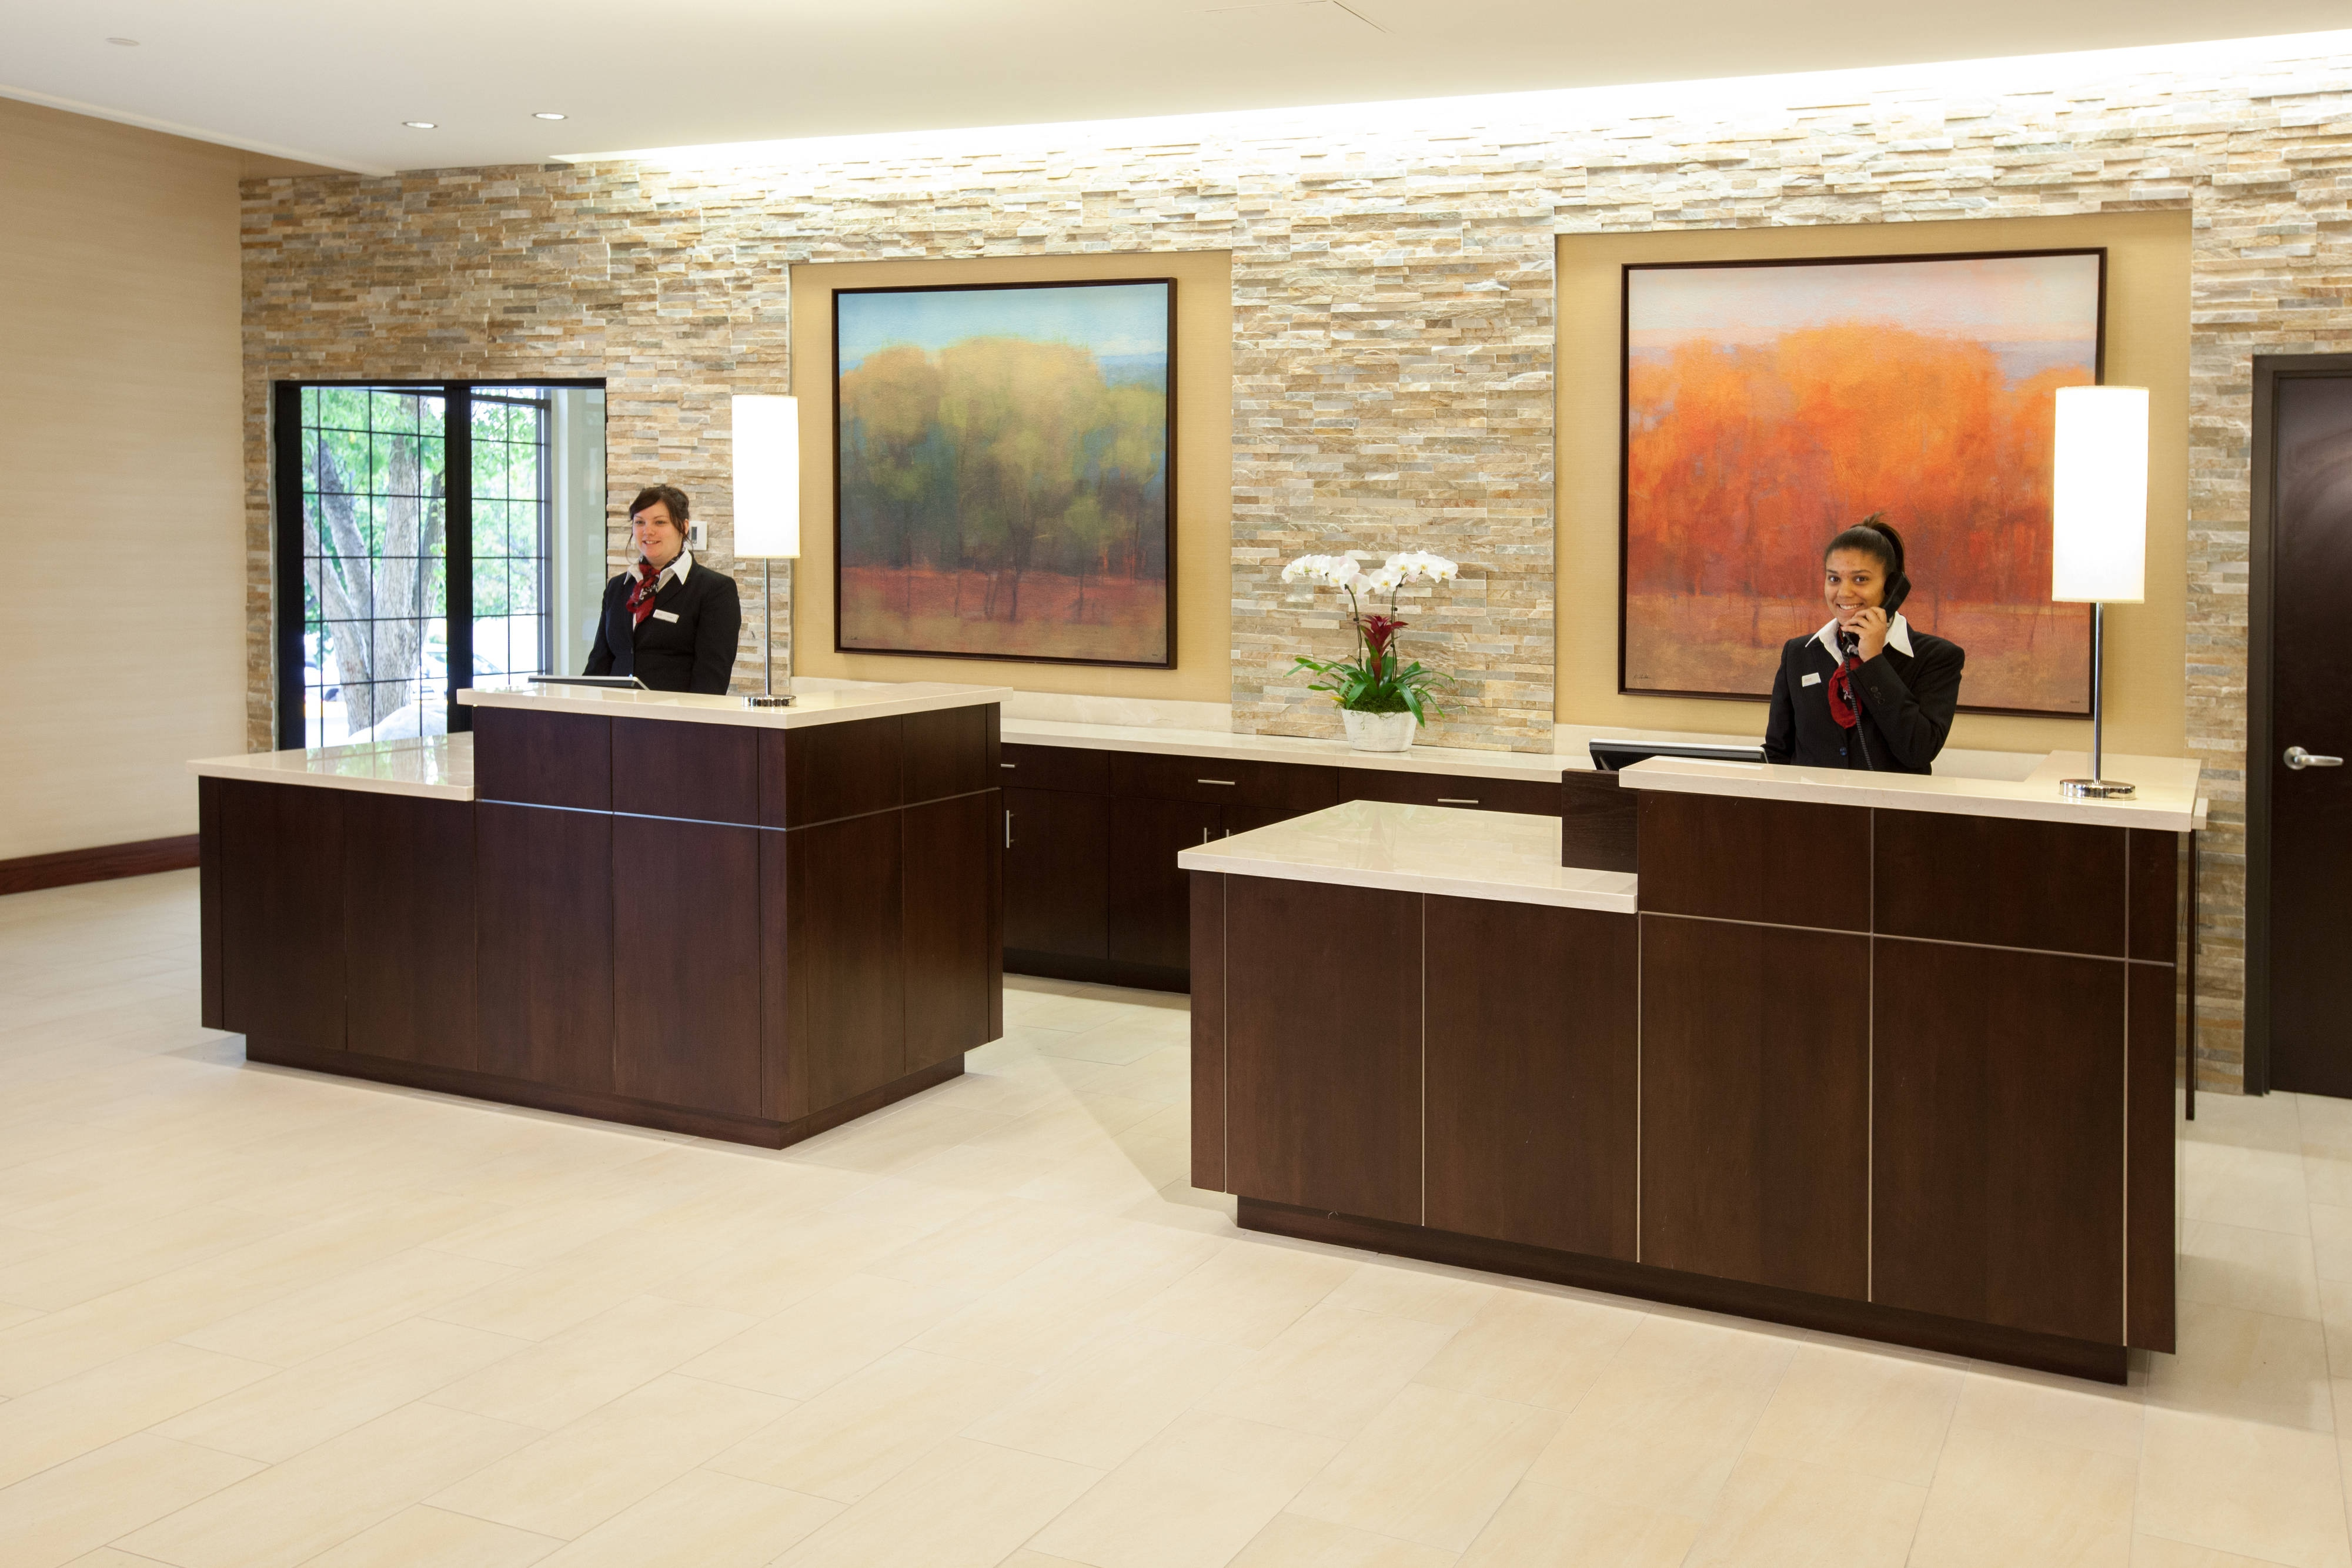 Minneapolis Marriott Northwest Front Desk